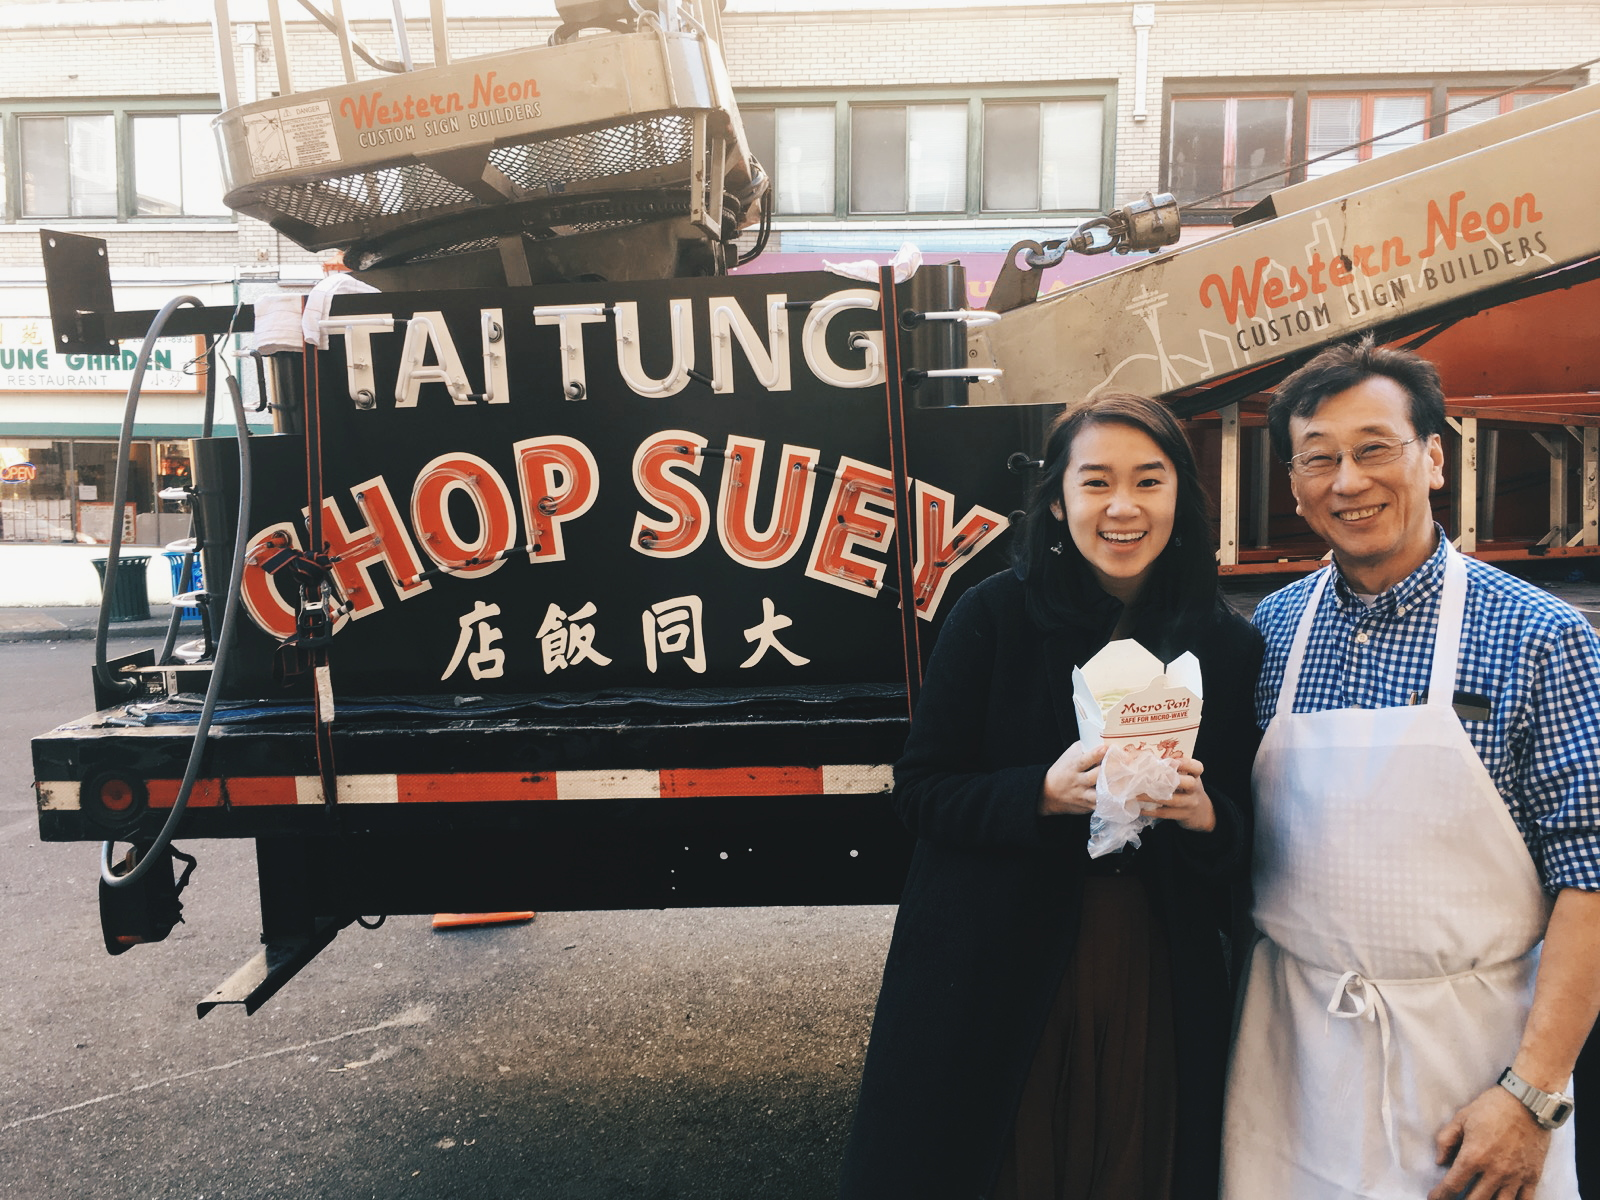 Me and Harry Chan, the owner of Tai Tung, standing next to the sign before it was installed. I am holding a to-go box filled with chop suey.